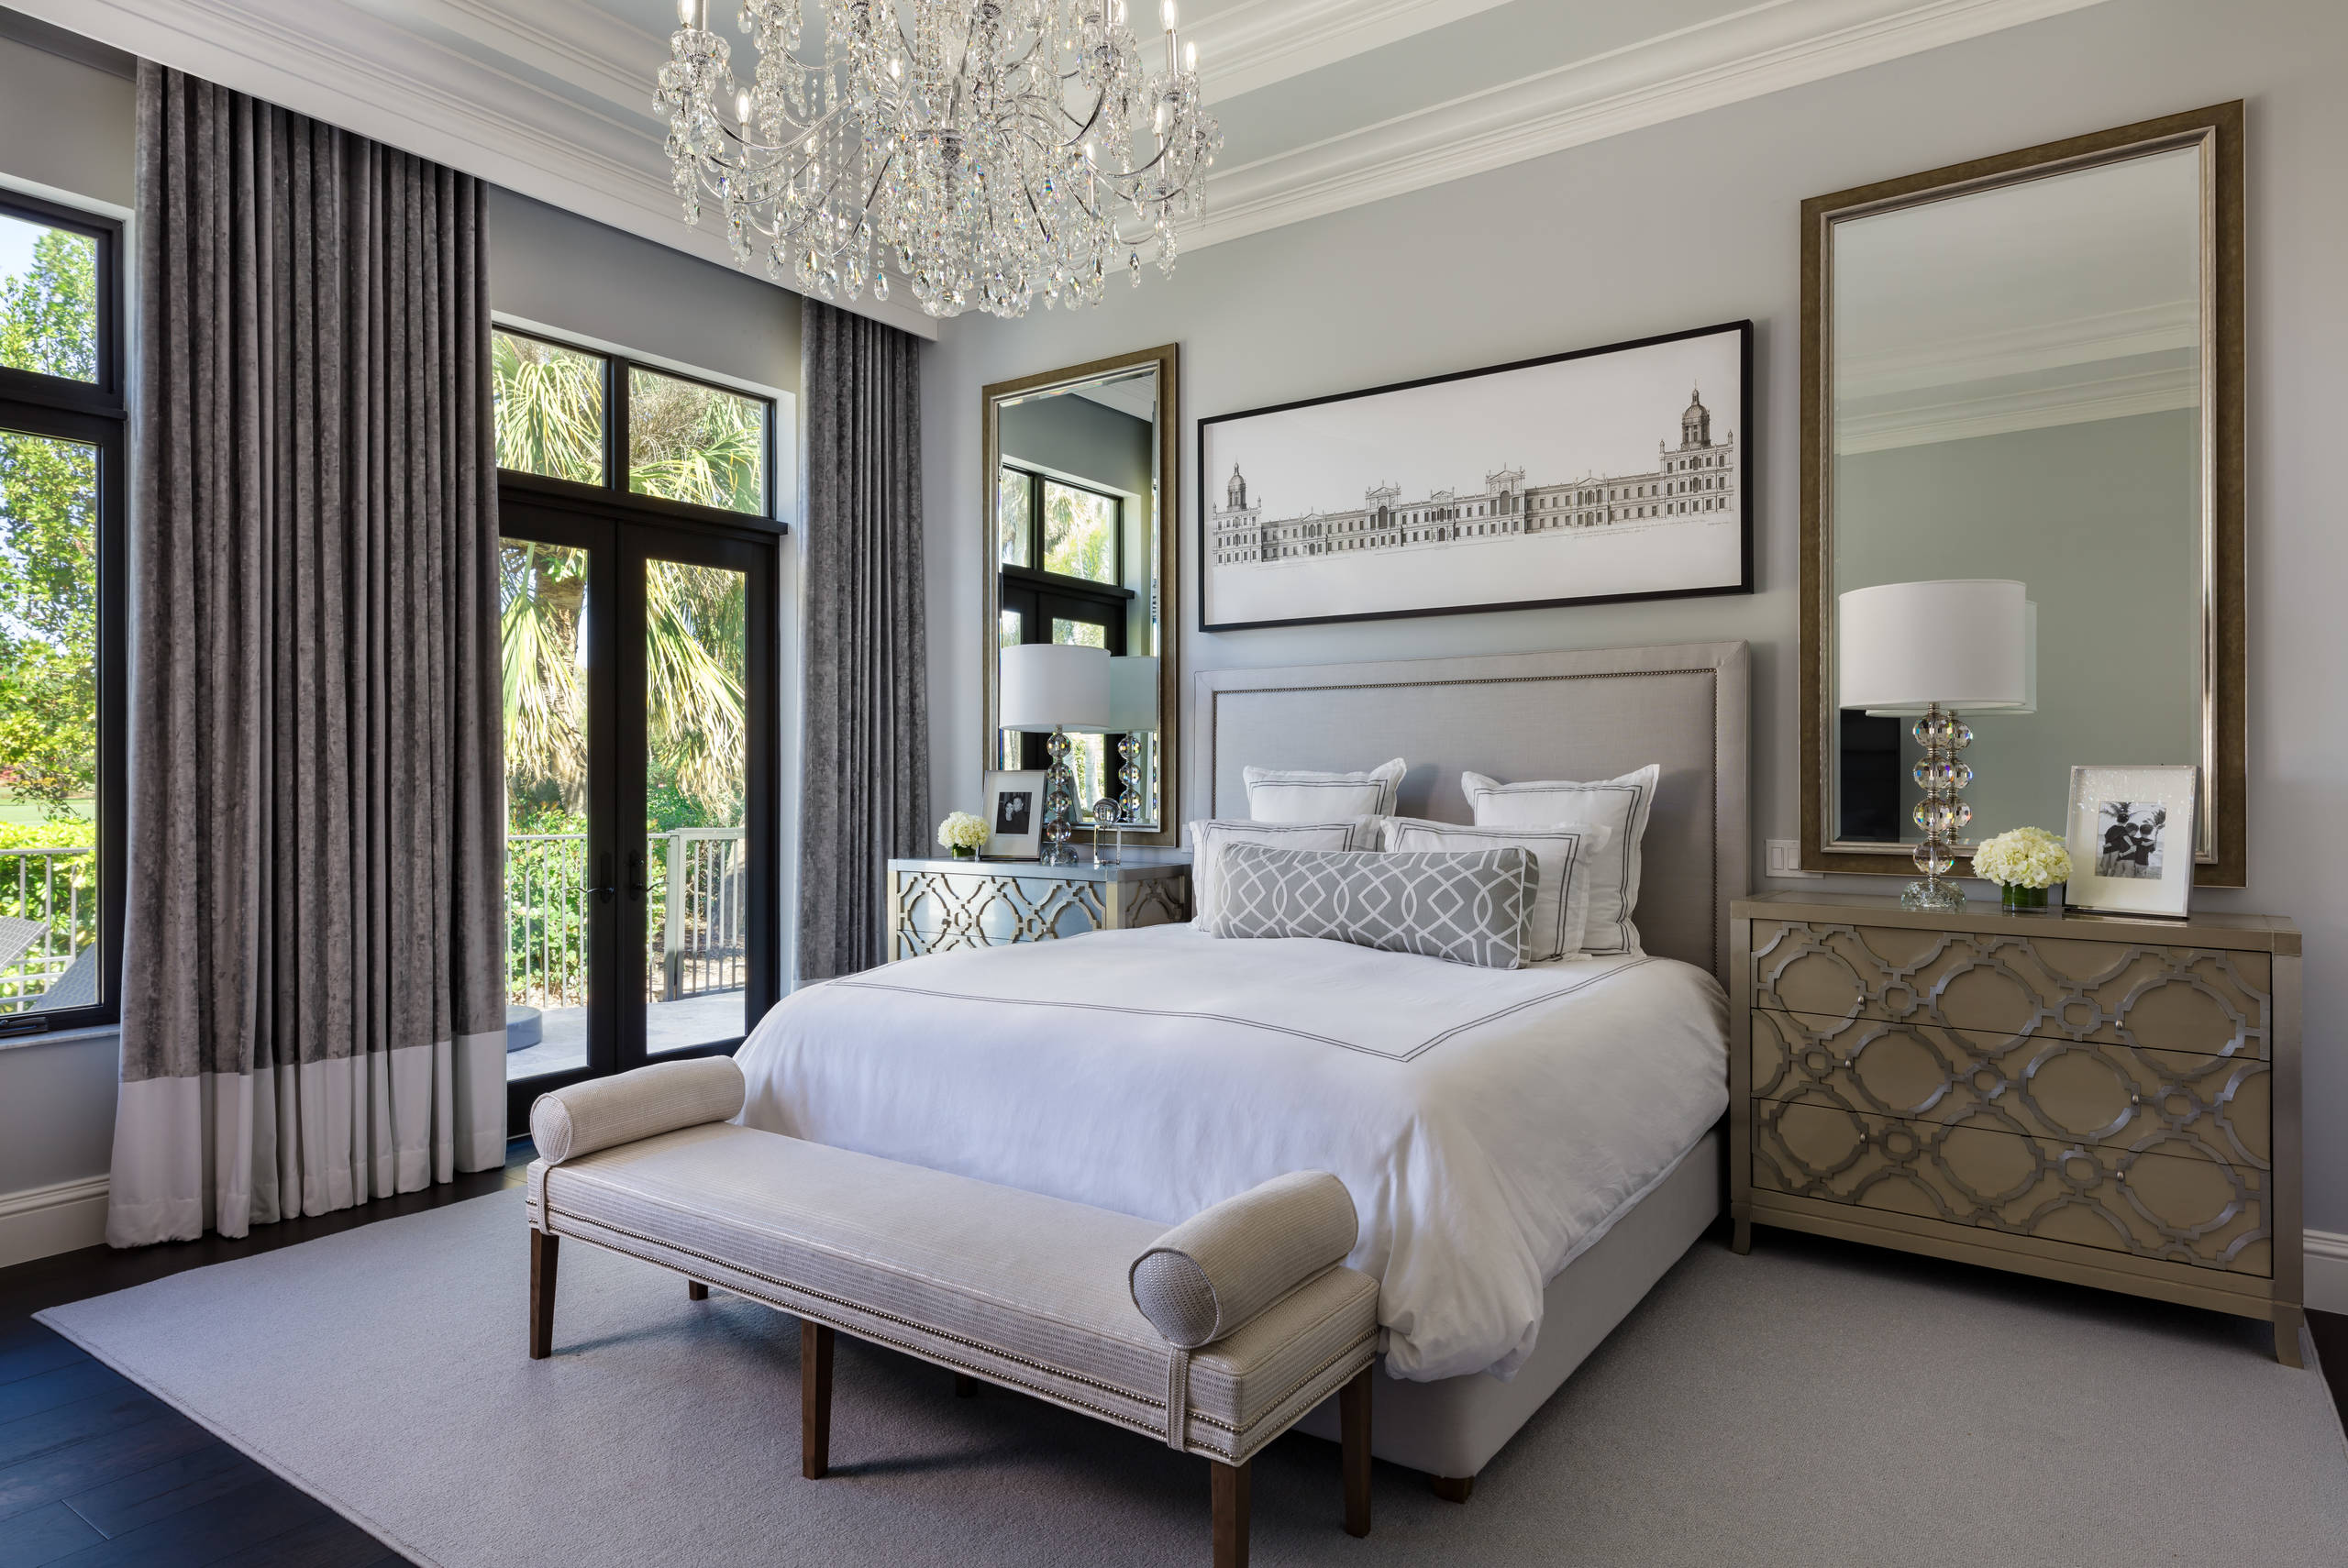 75 Beautiful Transitional Master Bedroom Pictures Ideas September 2020 Houzz